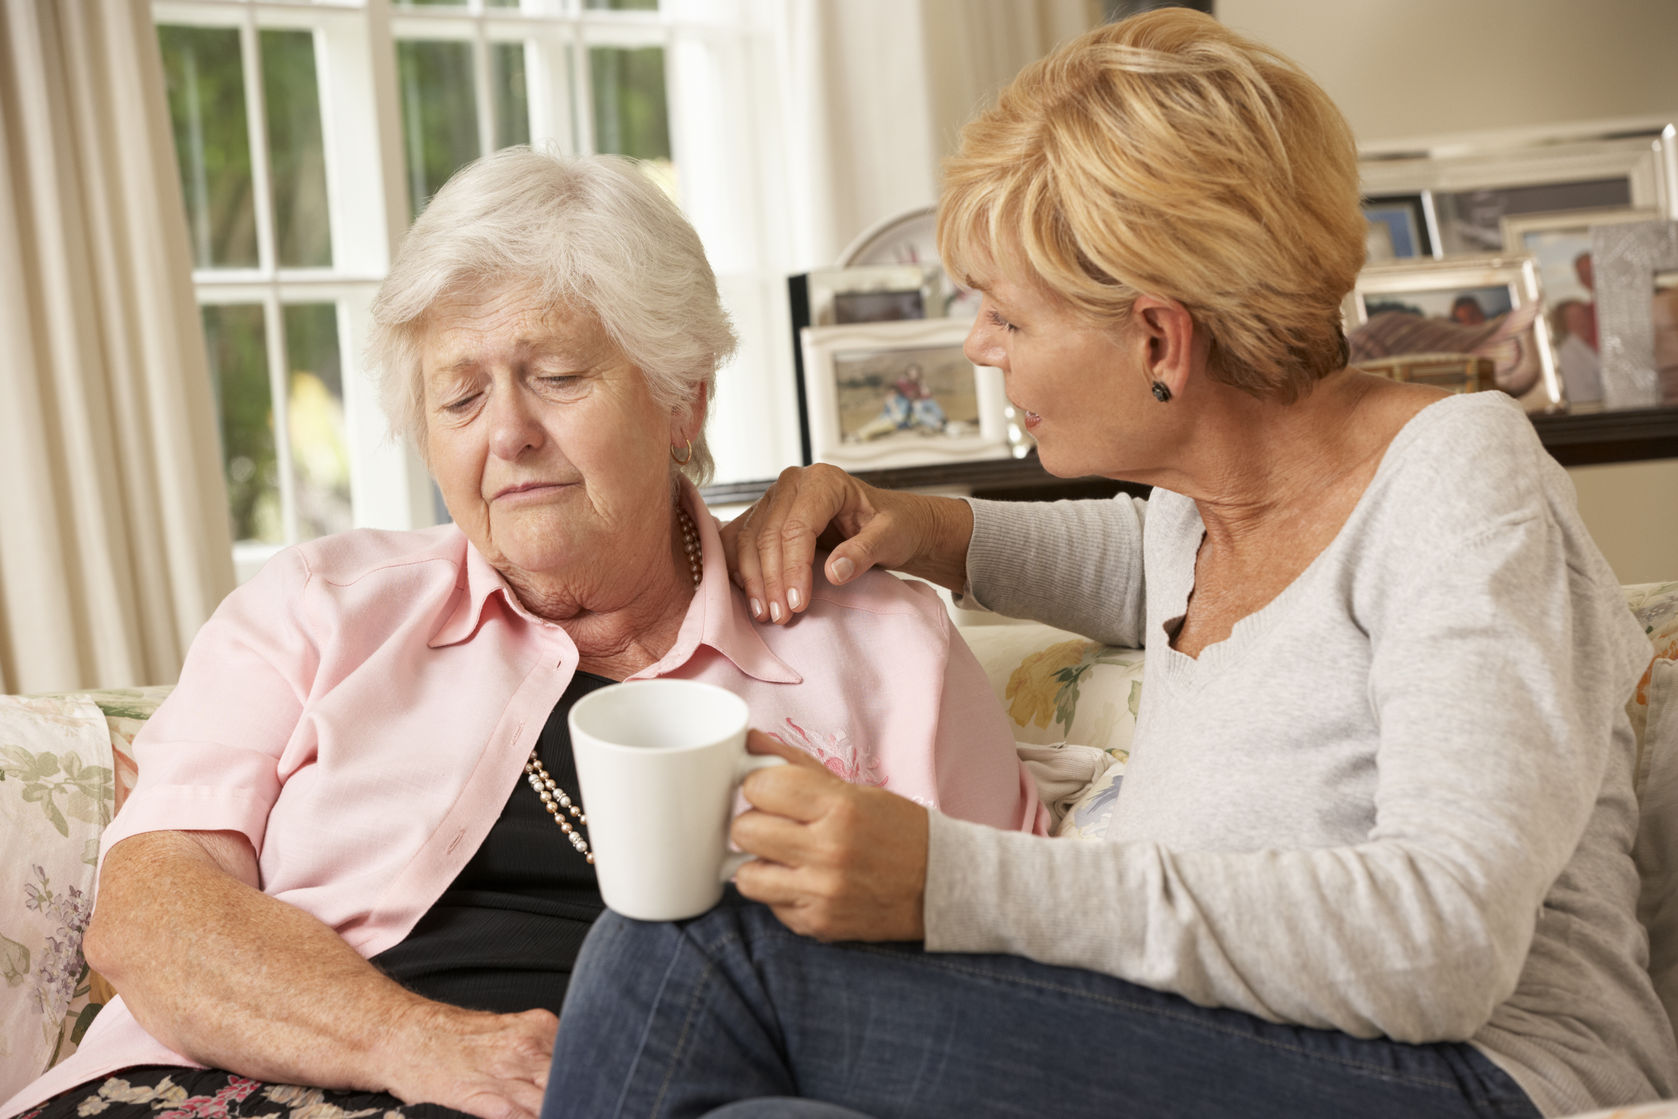 Elderly Care: Crafty Lead-Ins for Potentially Difficult Conversations